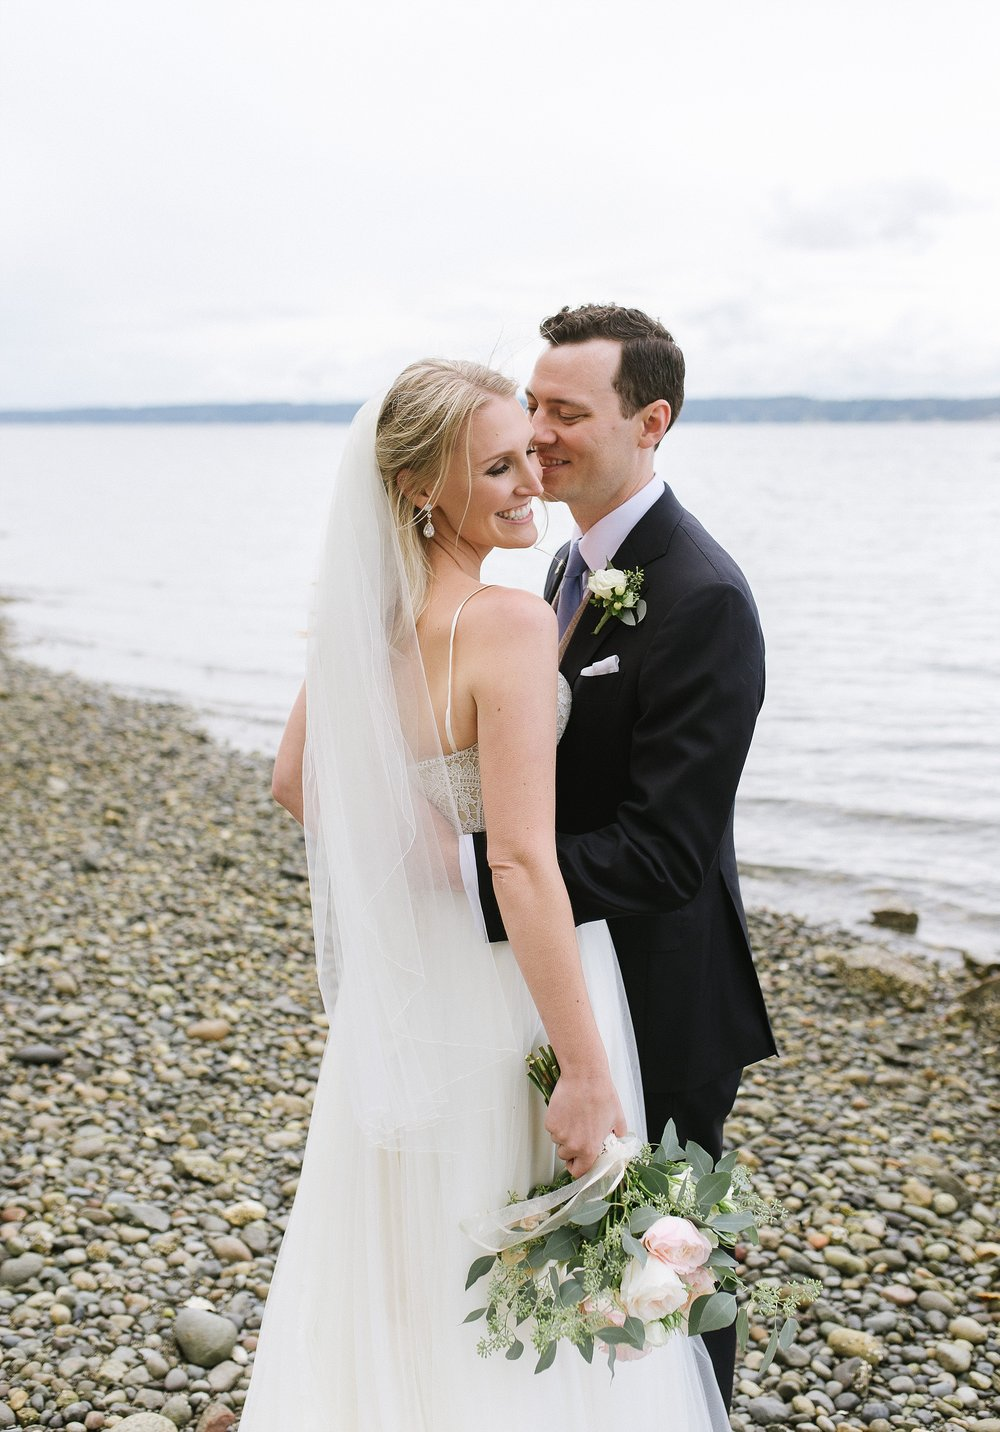 gig_harbor_washington_wedding_danacolin_cdp_0025.jpg